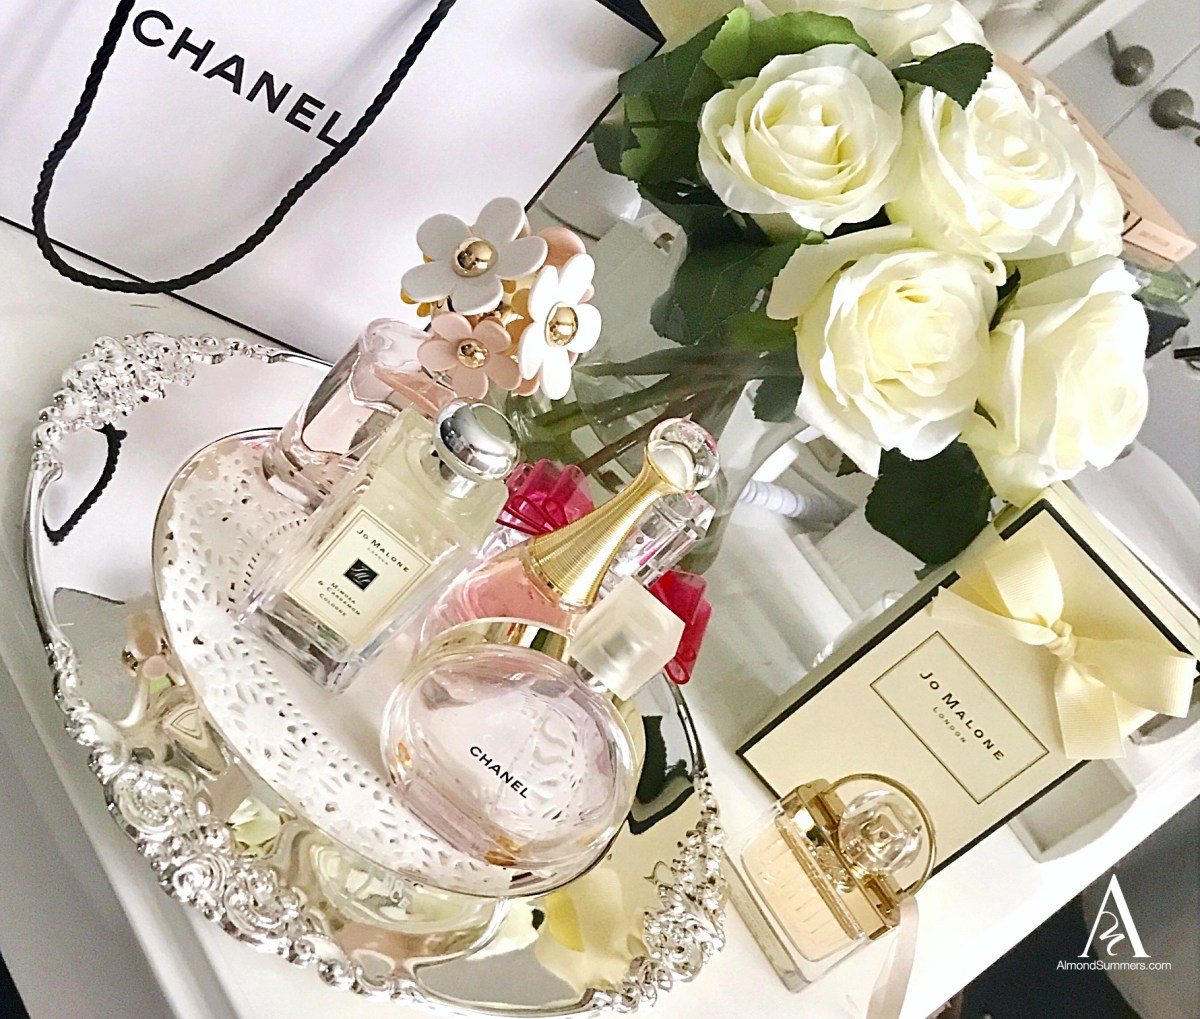 Best Fresh Scent Perfumes 2018 Reviews Floral Perfumes For Women